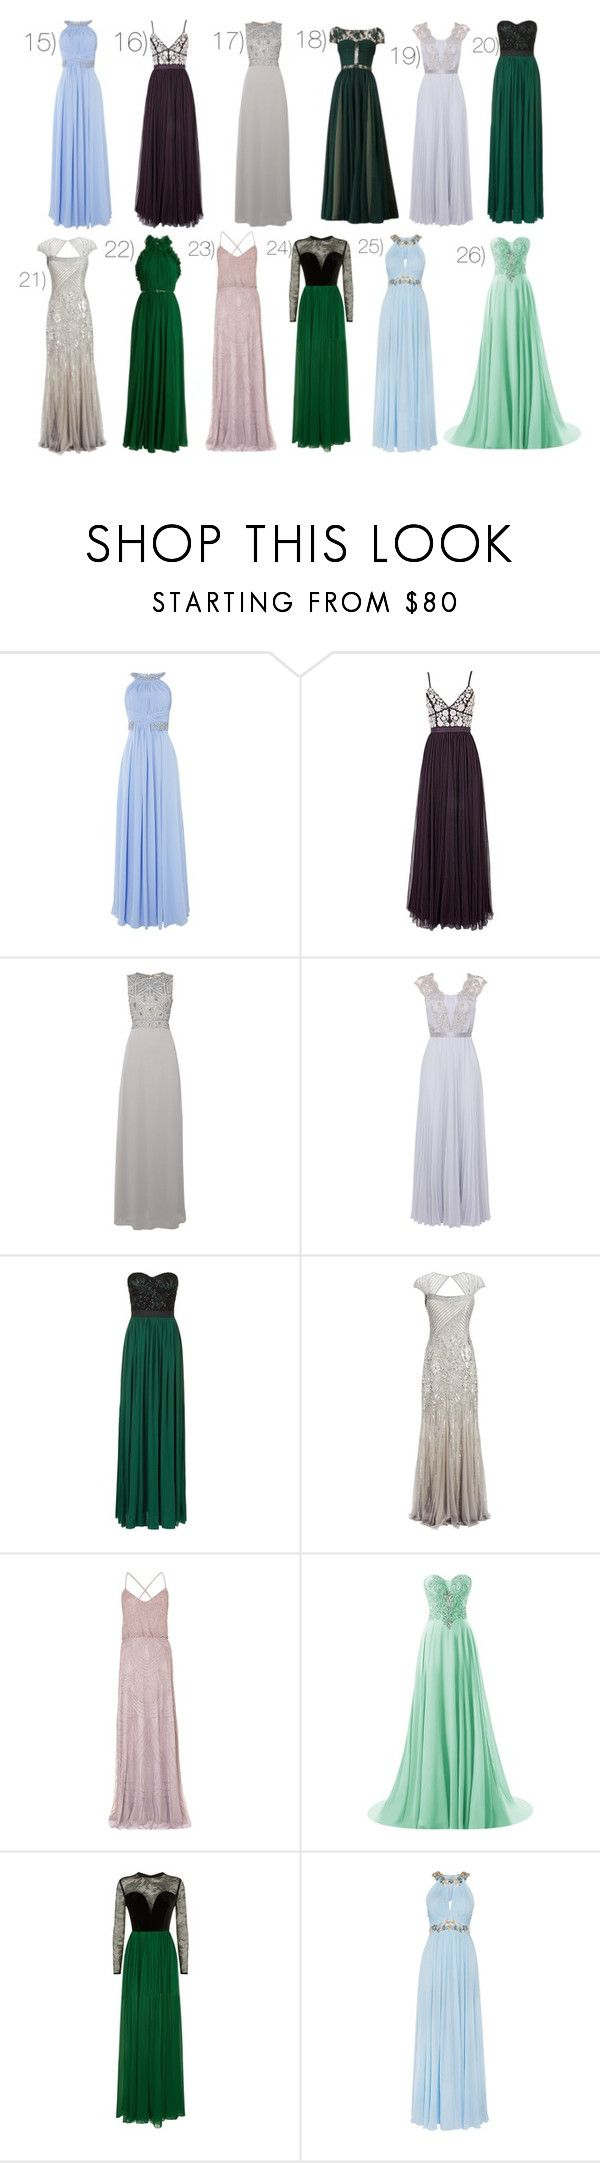 """Dresses: Part 2 (RTD~)"" by moon-crystal-wolff ❤ liked on Polyvore featuring Eliza J, Needle & Thread, Lace & Beads, Coast, Rare London, Adrianna Papell, Elie Saab and Notte by Marchesa"